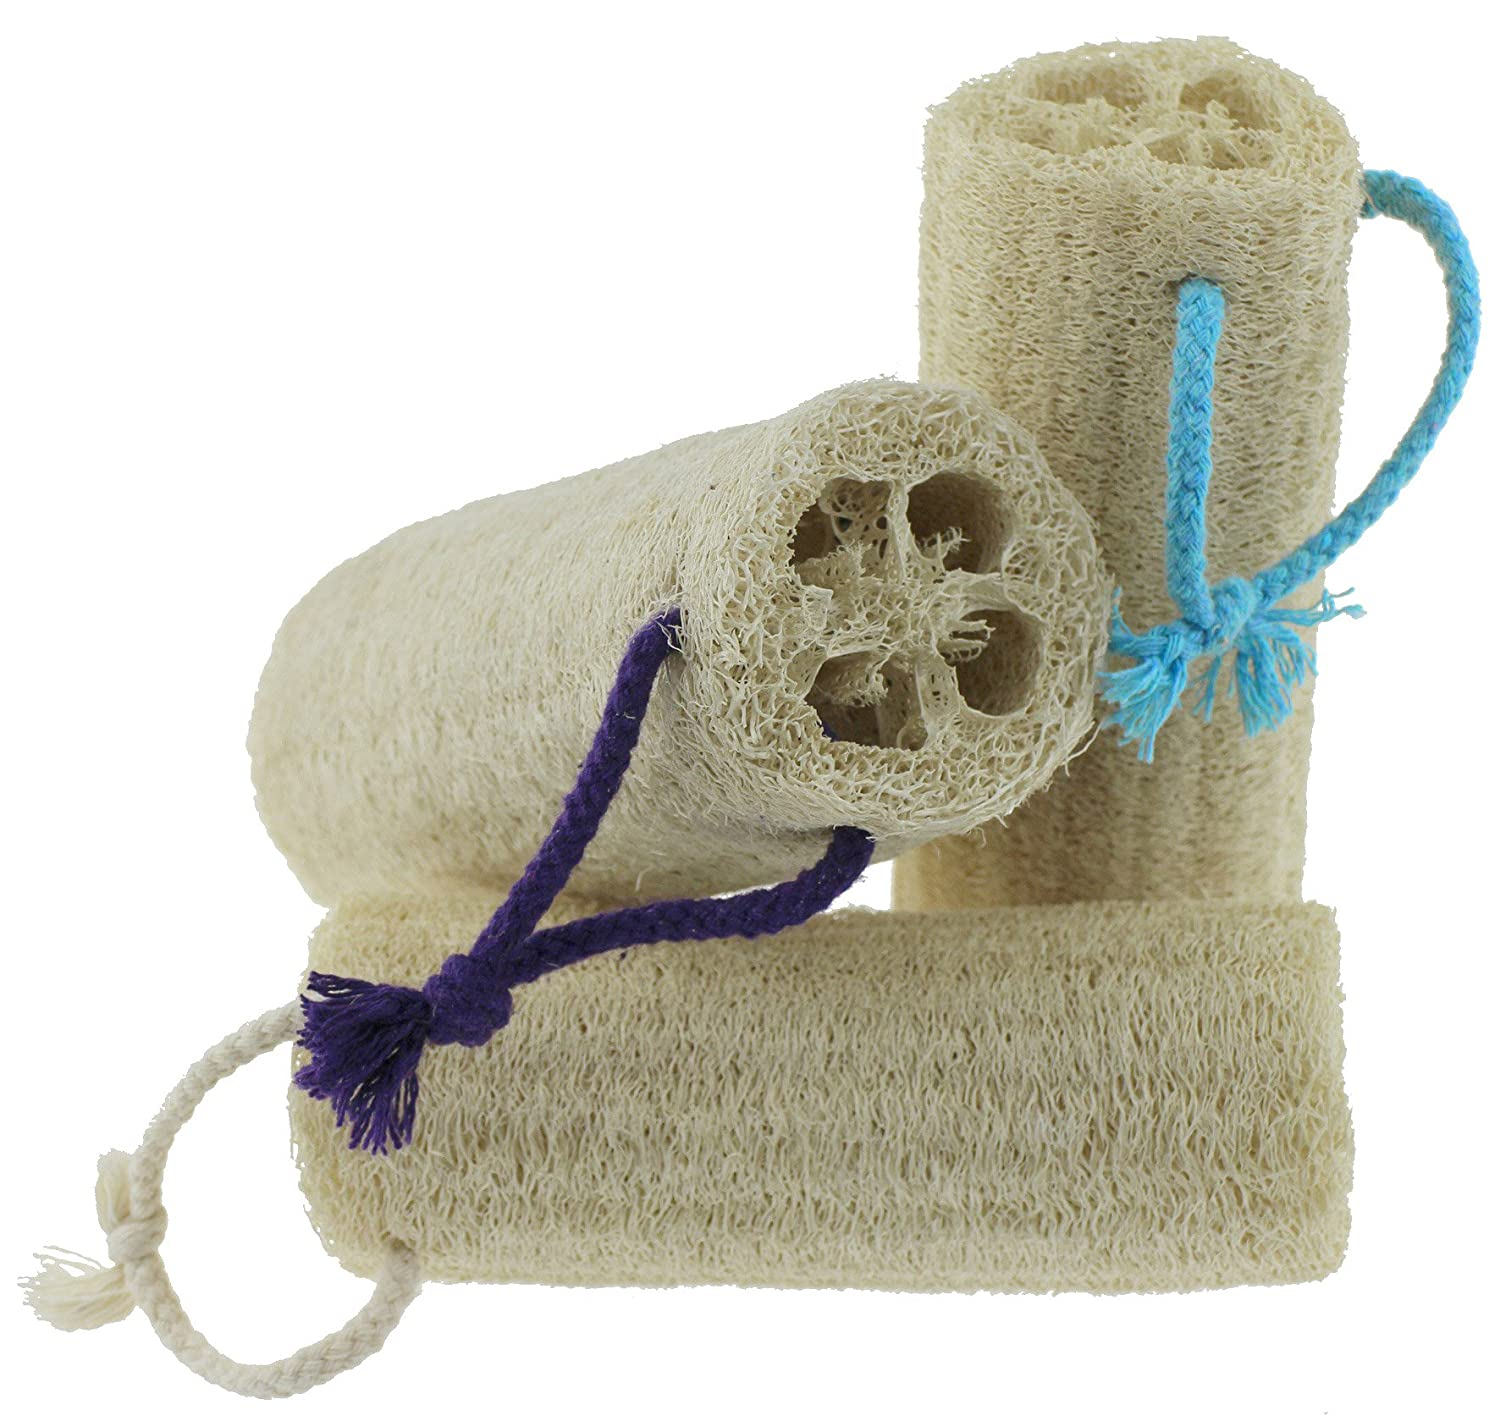 100% Natural Loofah Exfoliating Body Washcloths Sponge Scrubber for Skin Care in Bath, Spa or Shower Pack of 3